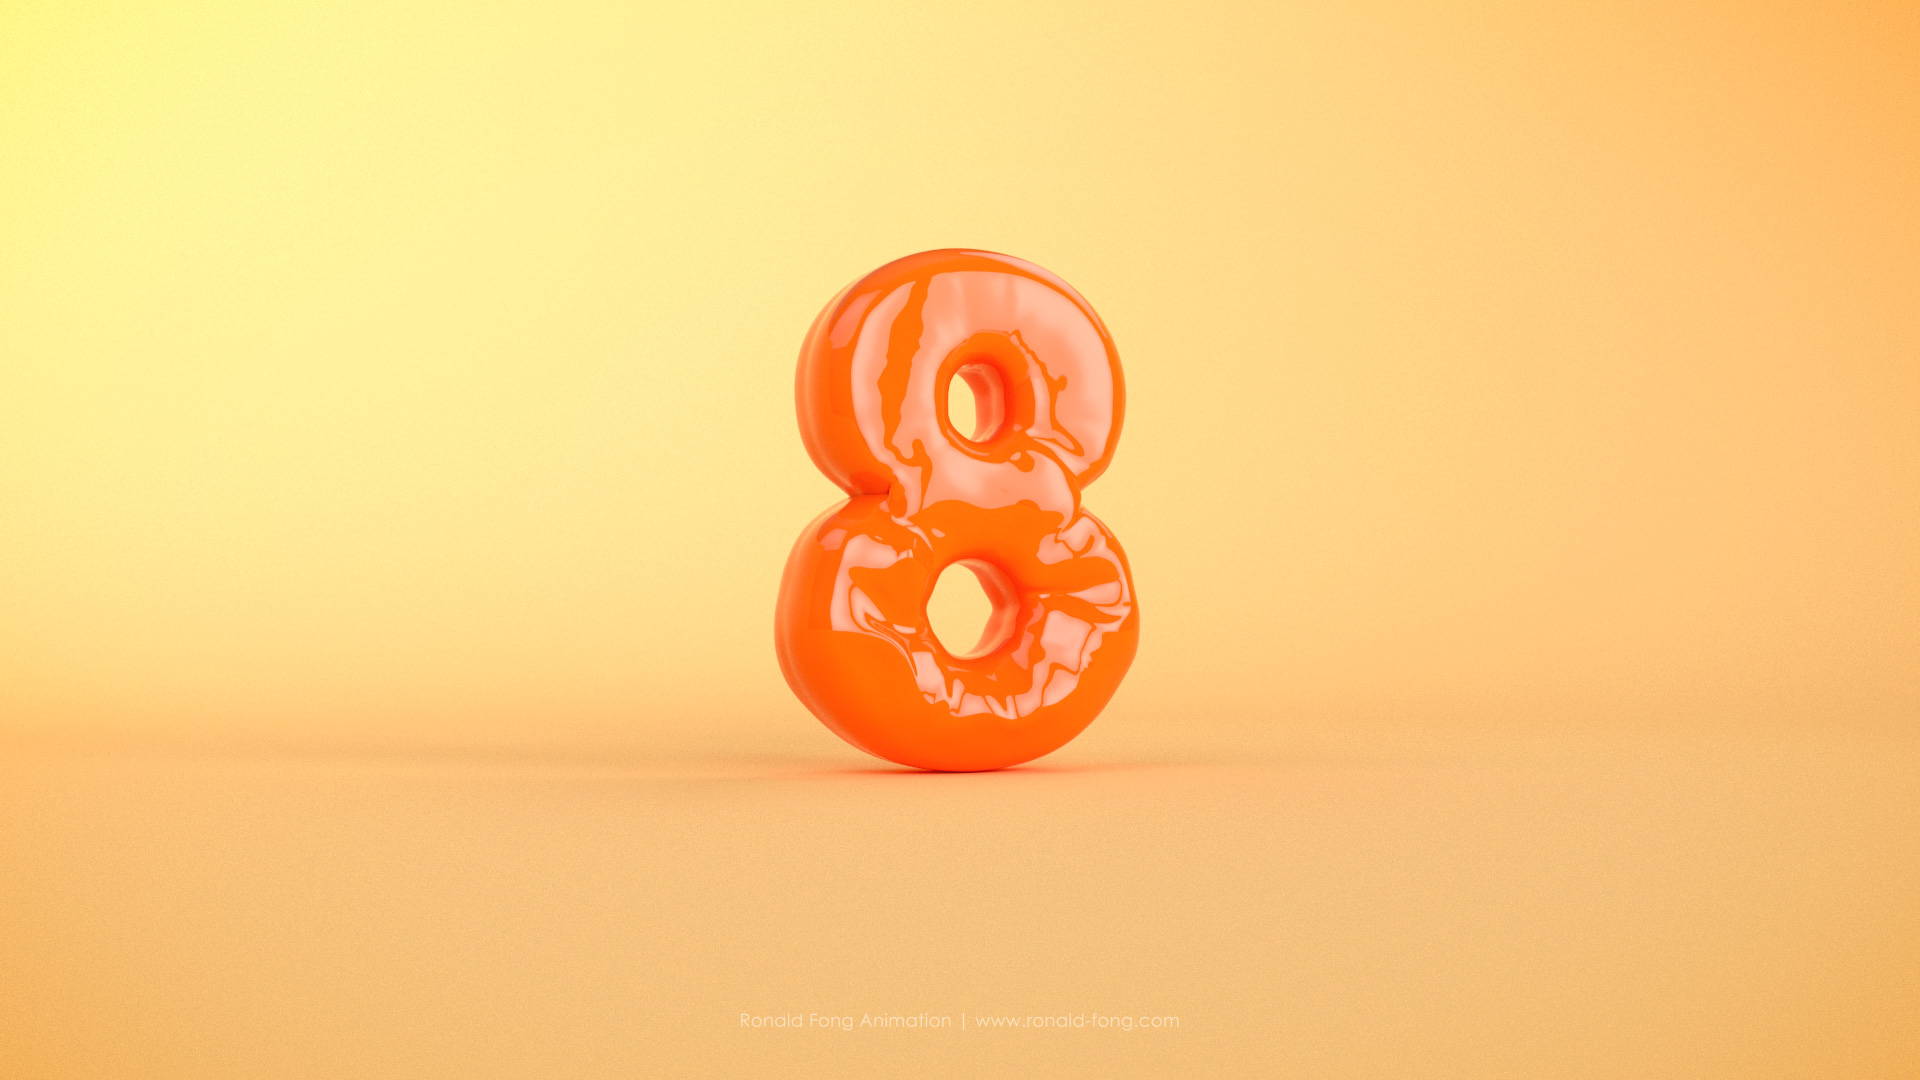 Ronald Fong - Eight 3D Balloon Text